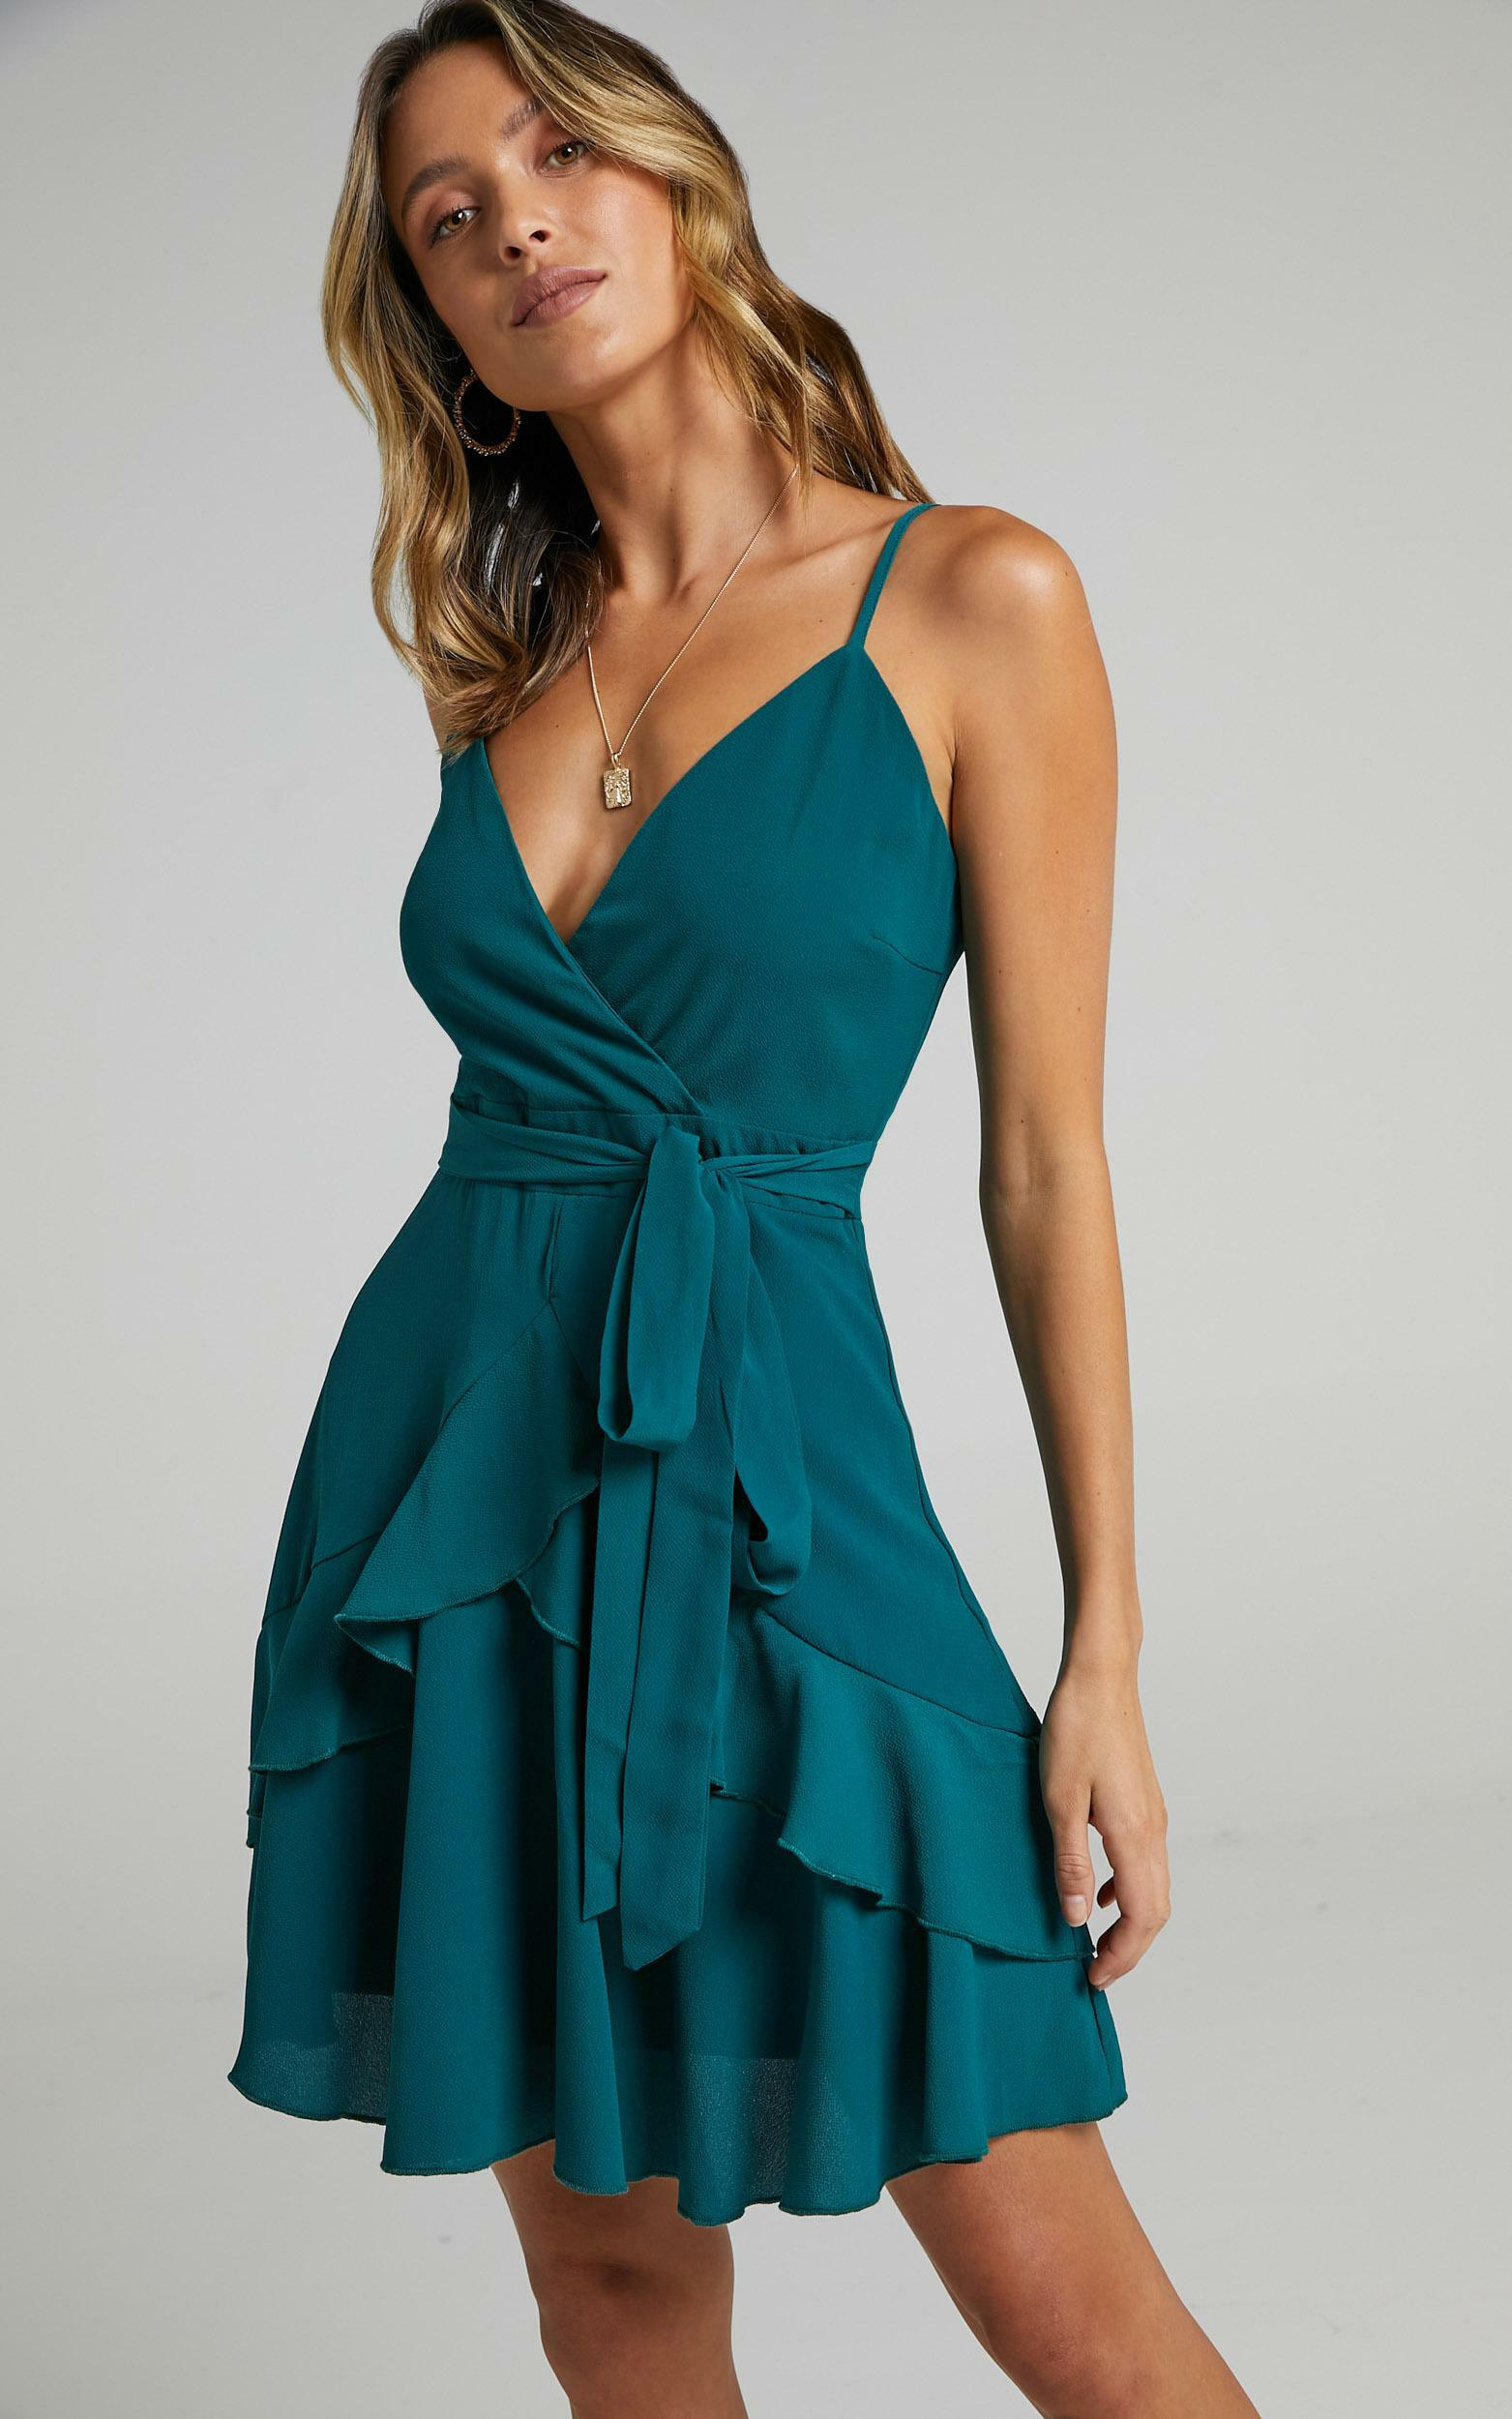 Feels Like Love Dress in Forest Green - 04, GRN3, hi-res image number null